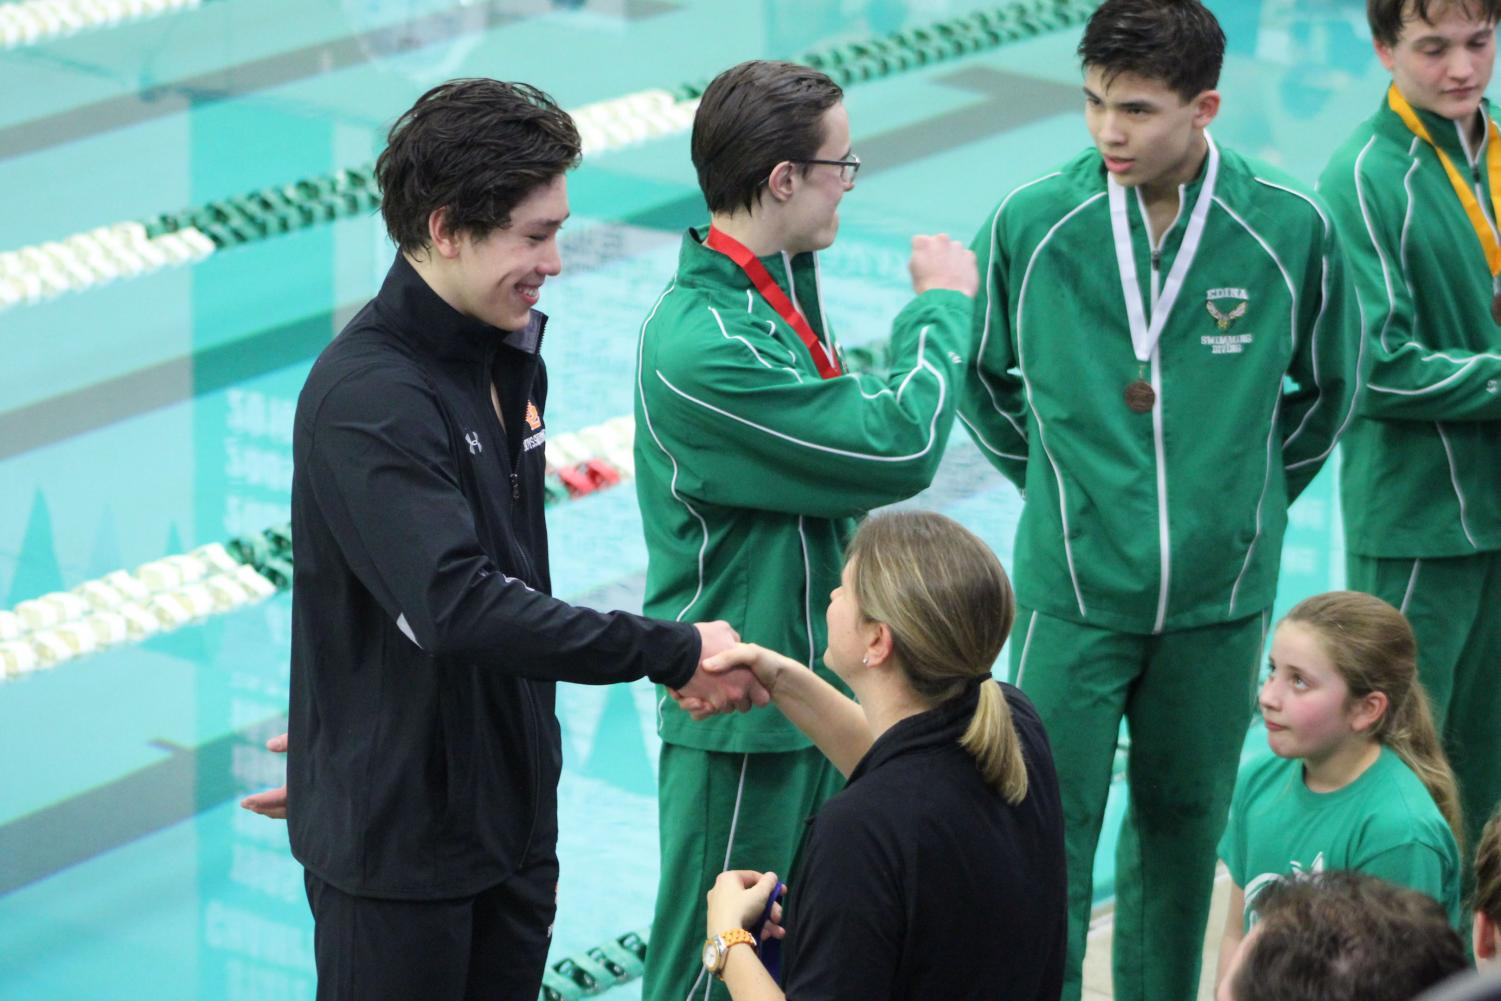 Hayden+Zheng+accepts+first+place+medal+for+his+performance+in+the+200+IM.+The+award+was+presented+to+him+by+math+teacher+Amanda+Forsberg.+The+time+of+1.56.1+minutes+and+place+qualified+him+for+the+State+meet+March+1+and+2.